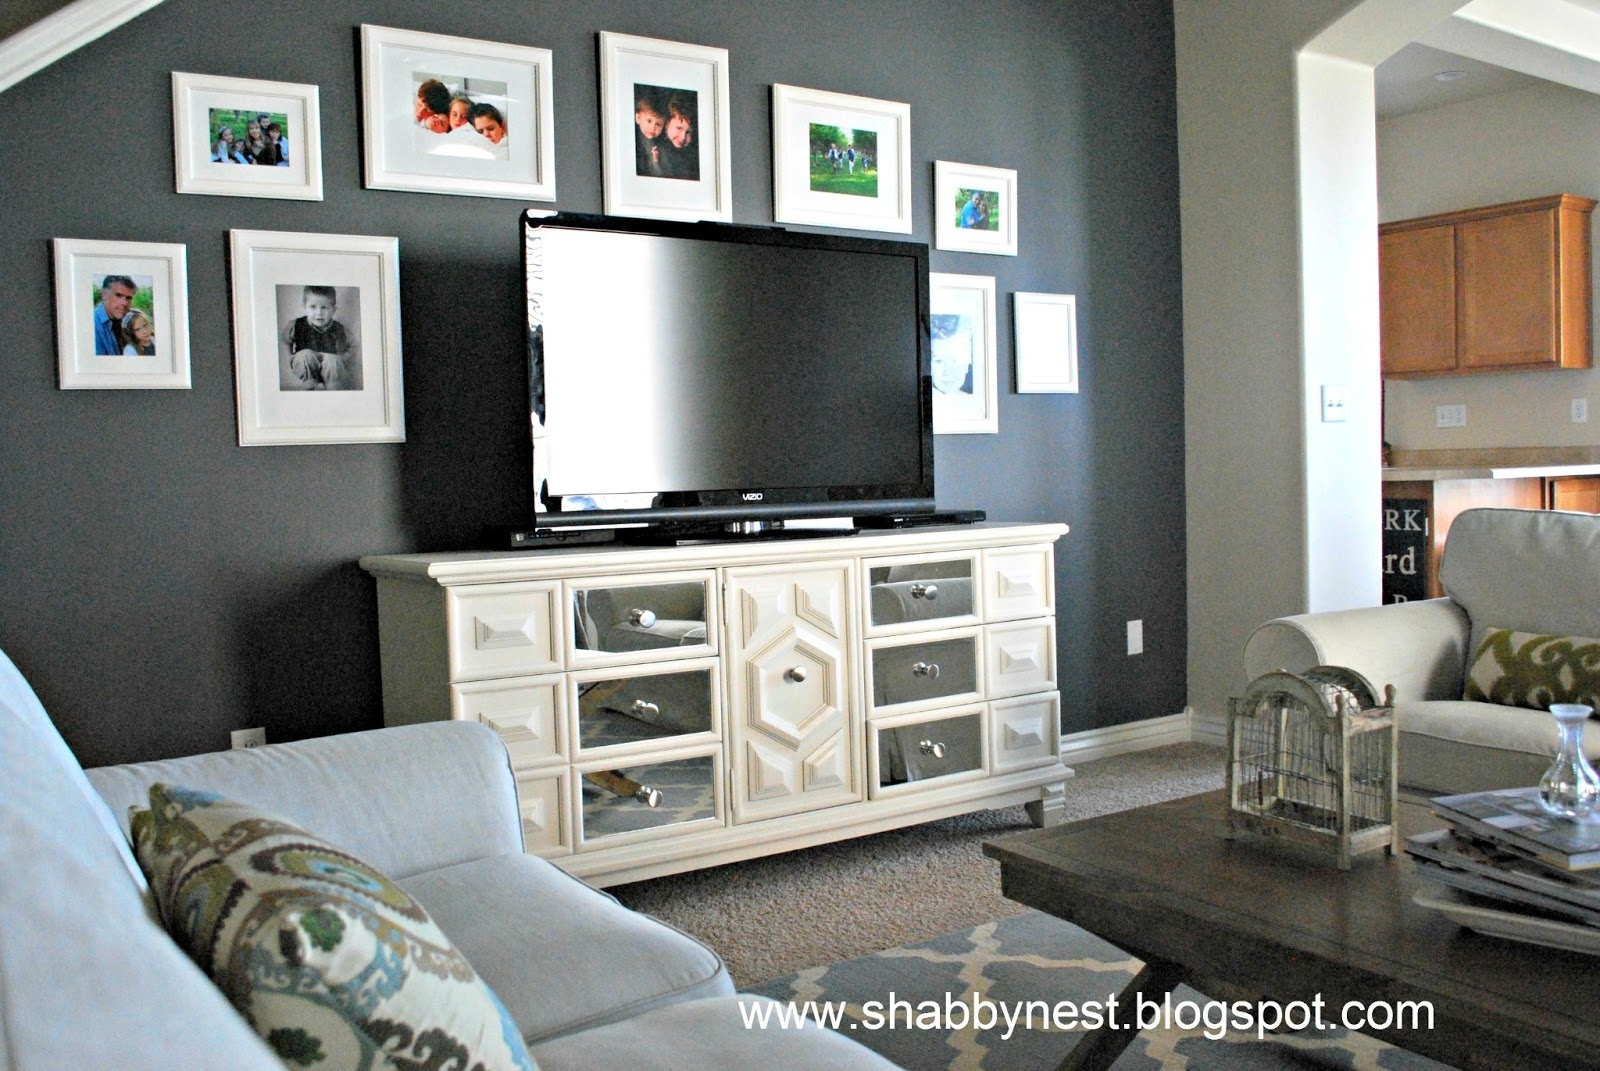 Wall Decor: Awesome Decorating A Living Room With Gray Walls Within 2018 Wall Accents For Grey Room (View 3 of 15)